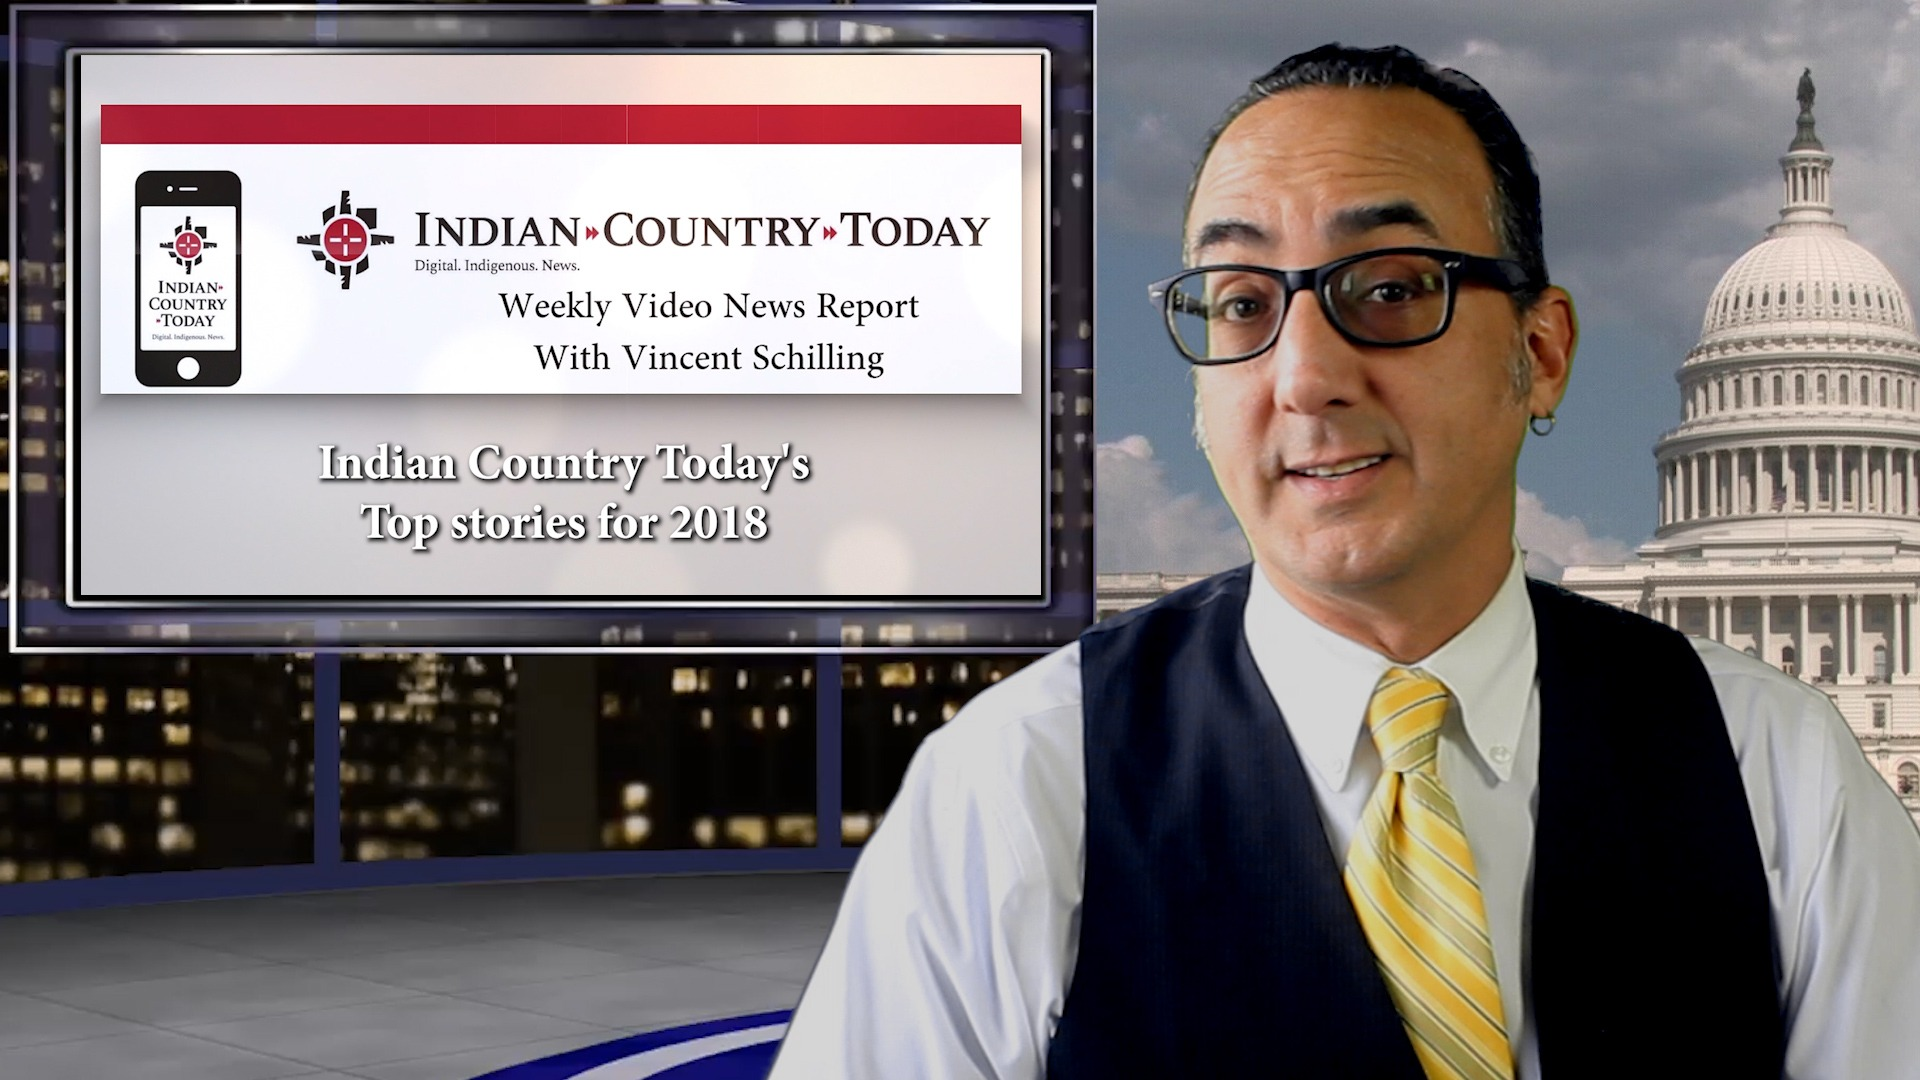 The most comprehensive list of stories of interest within Indian Country - CVMT